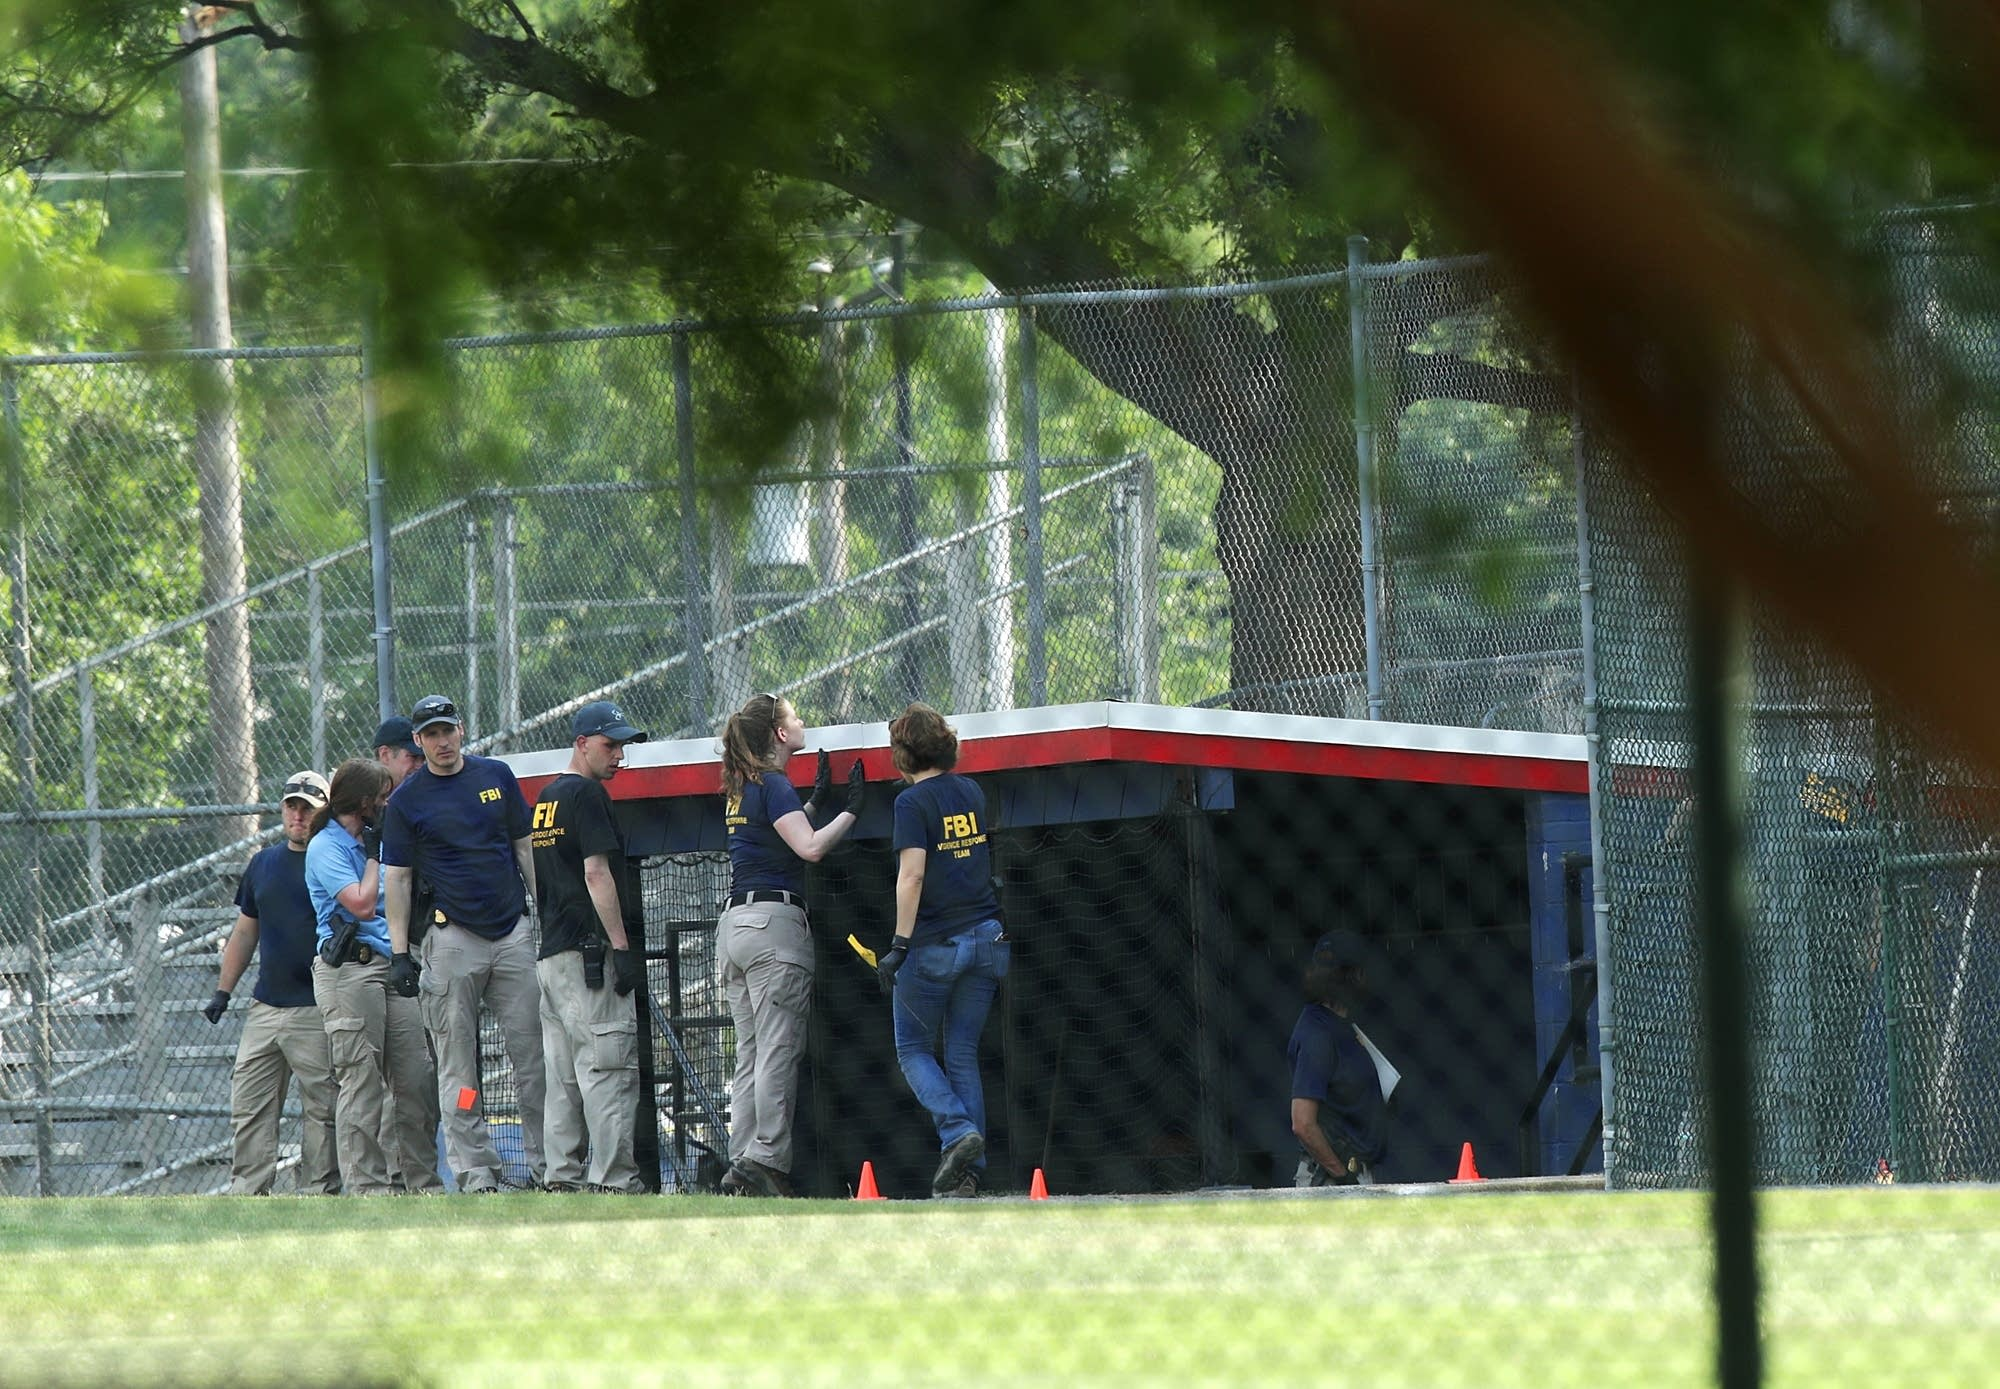 Congressional Baseball game has tender moments, day after shooter injures 5